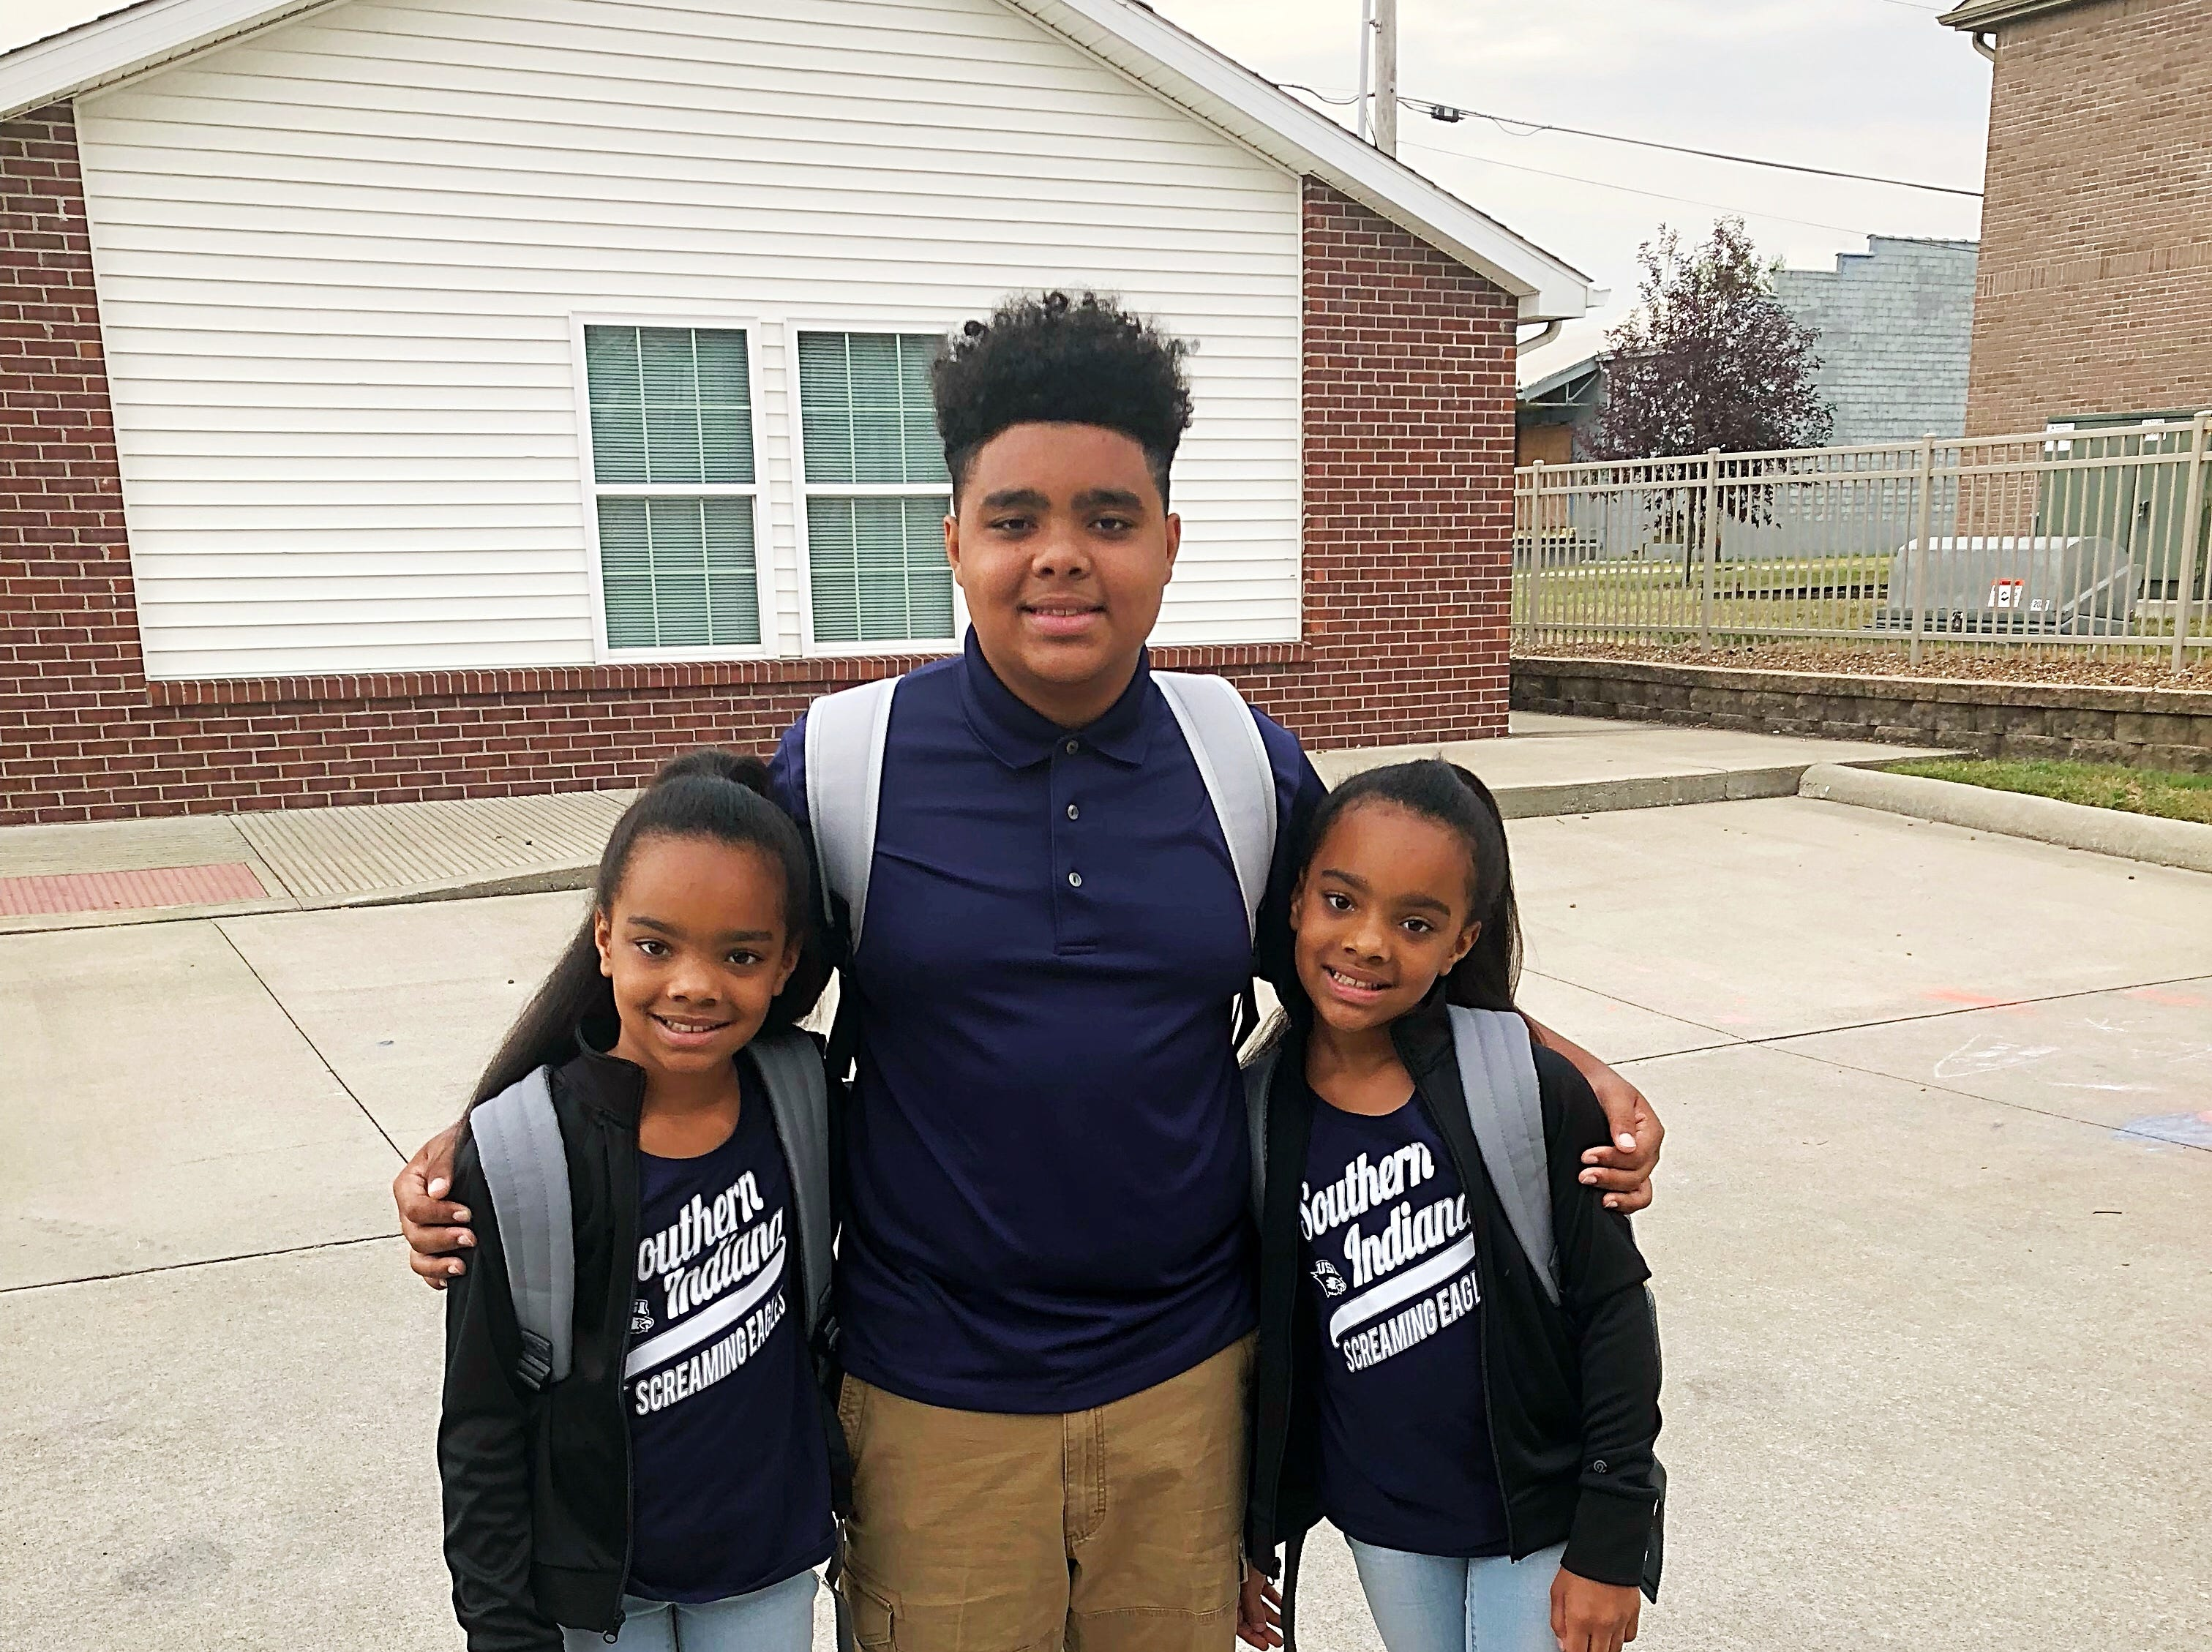 Jayden Wisdom 7th grade at Thompkins Middle school and Aliyiah and Breionah Littrell 4th grade at Highland Elementary School